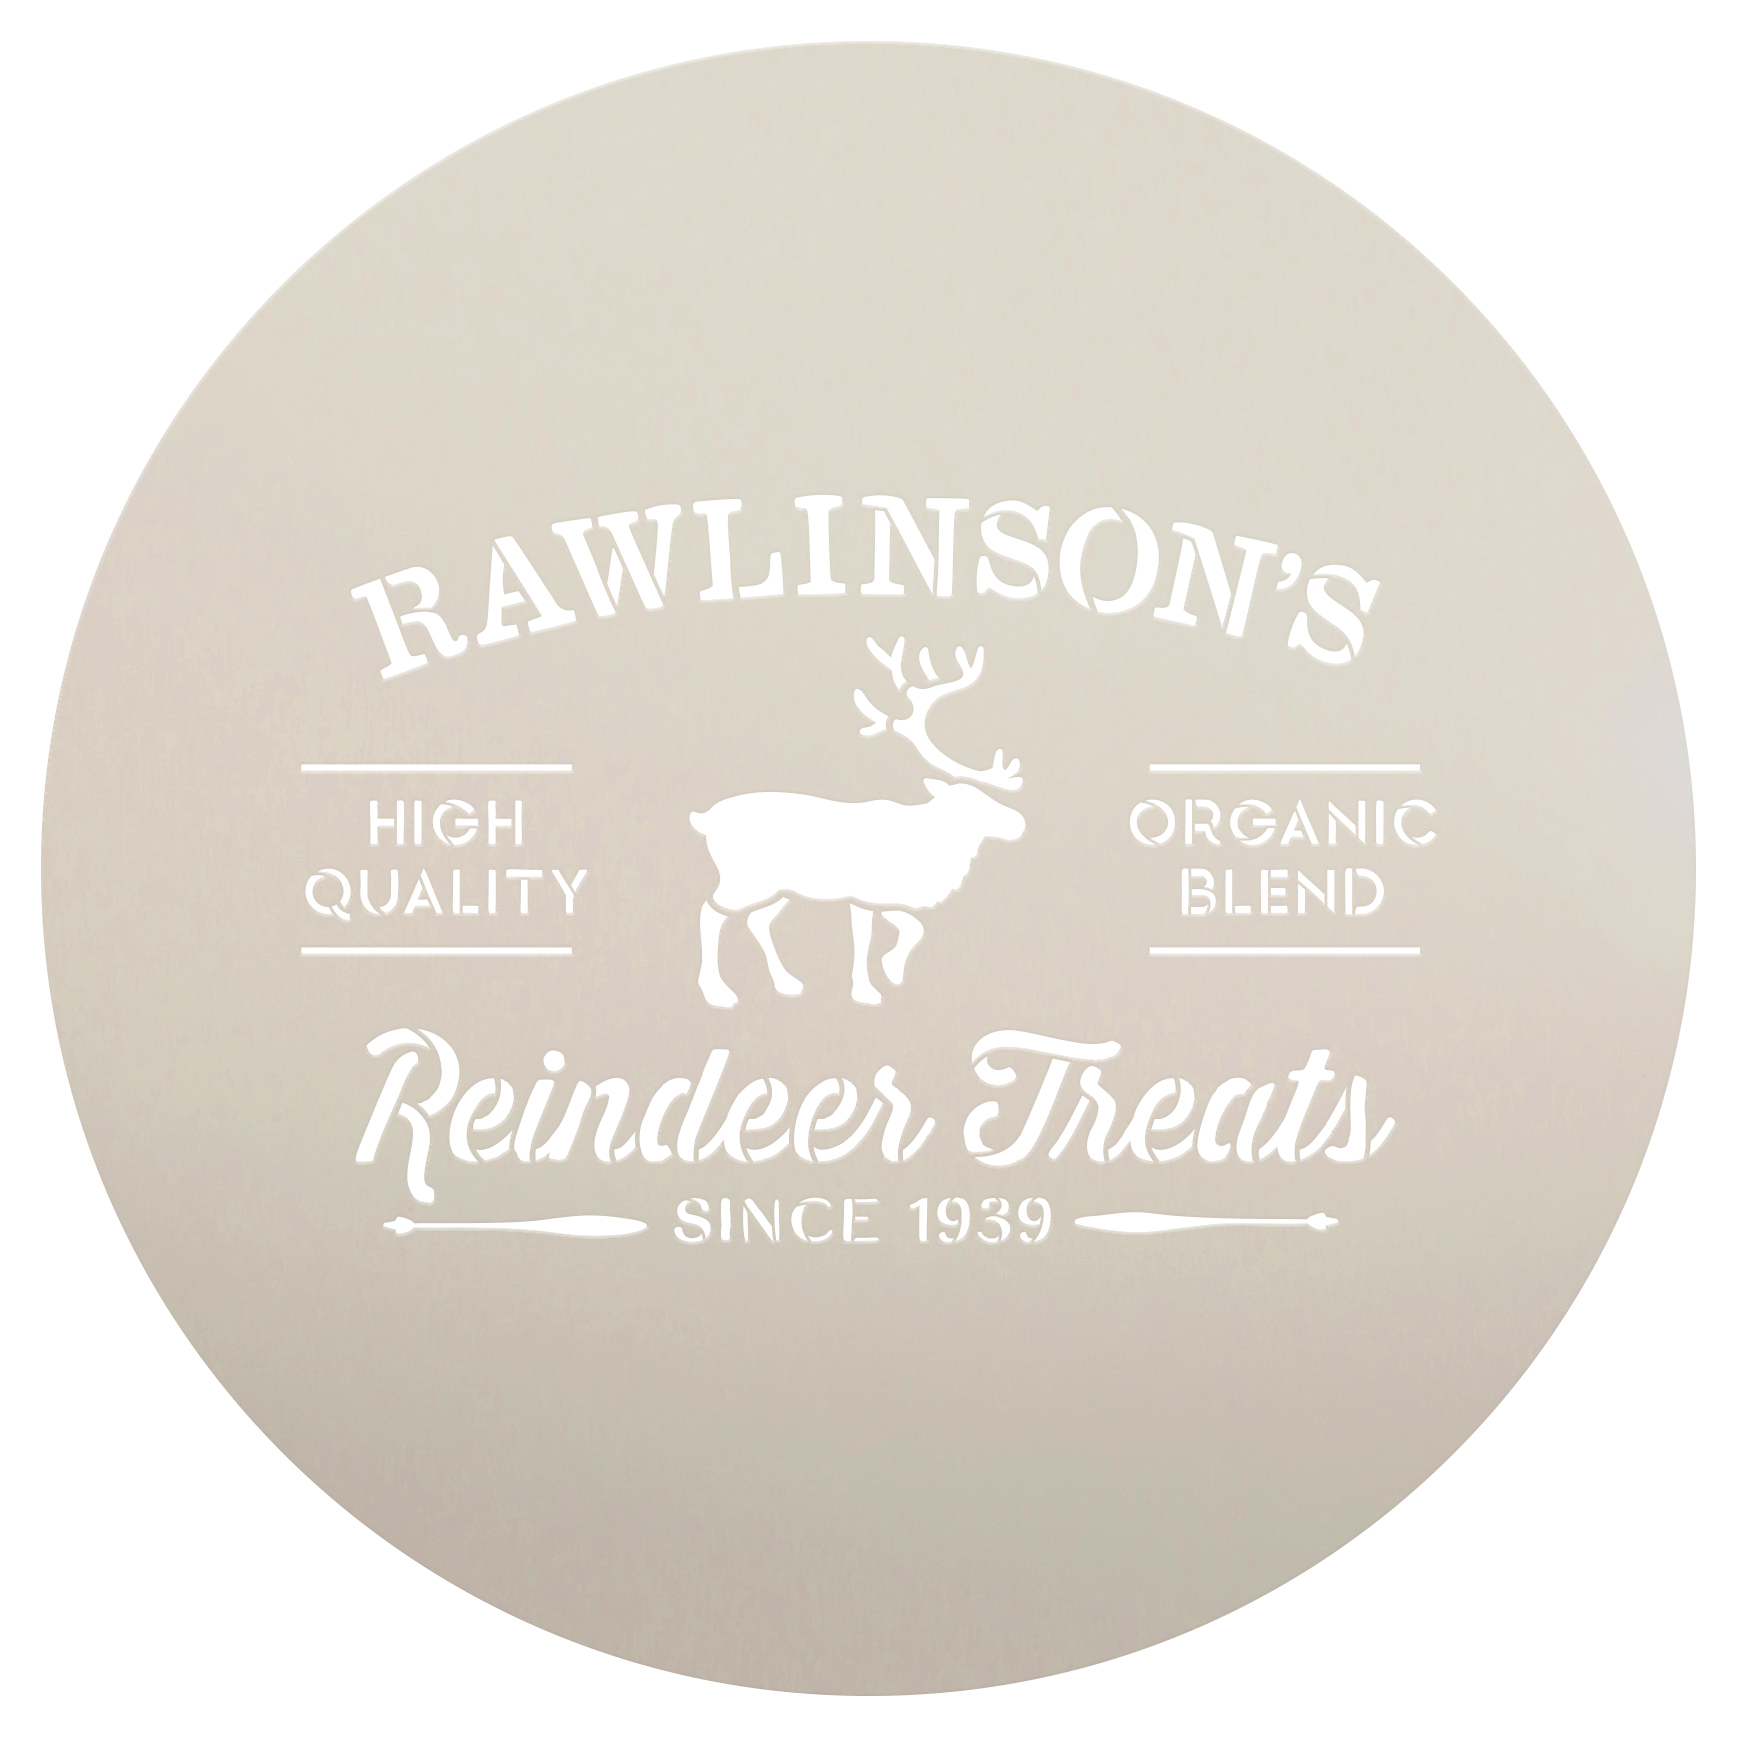 Personalized Stencil by StudioR12 | Family Name| Reindeer Treats Christmas Word Art - Reusable Mylar Template | DIY | Christmas | 9.5 Round | Small